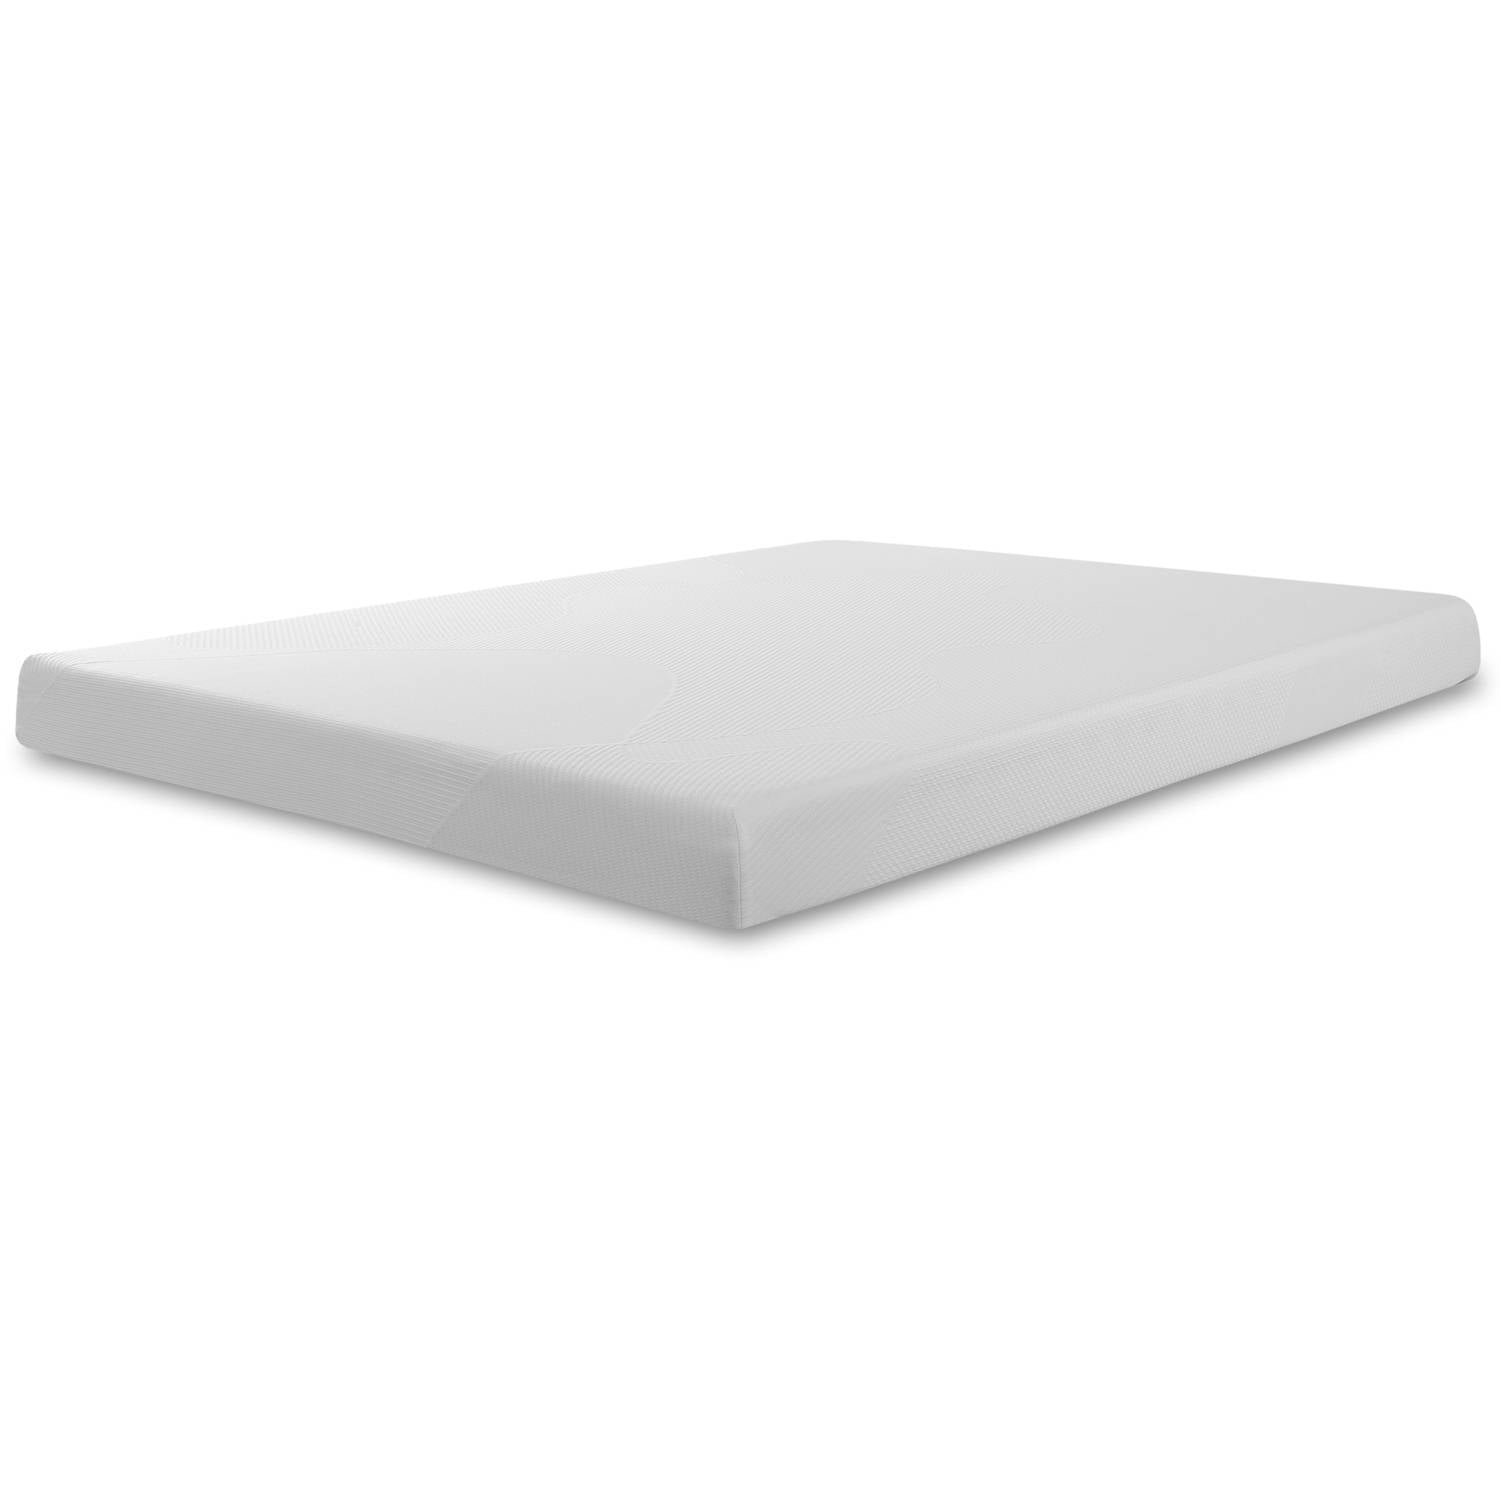 6 inch memory foam mattress full size bed cool firm sleep new spa sensations ebay Full size foam mattress